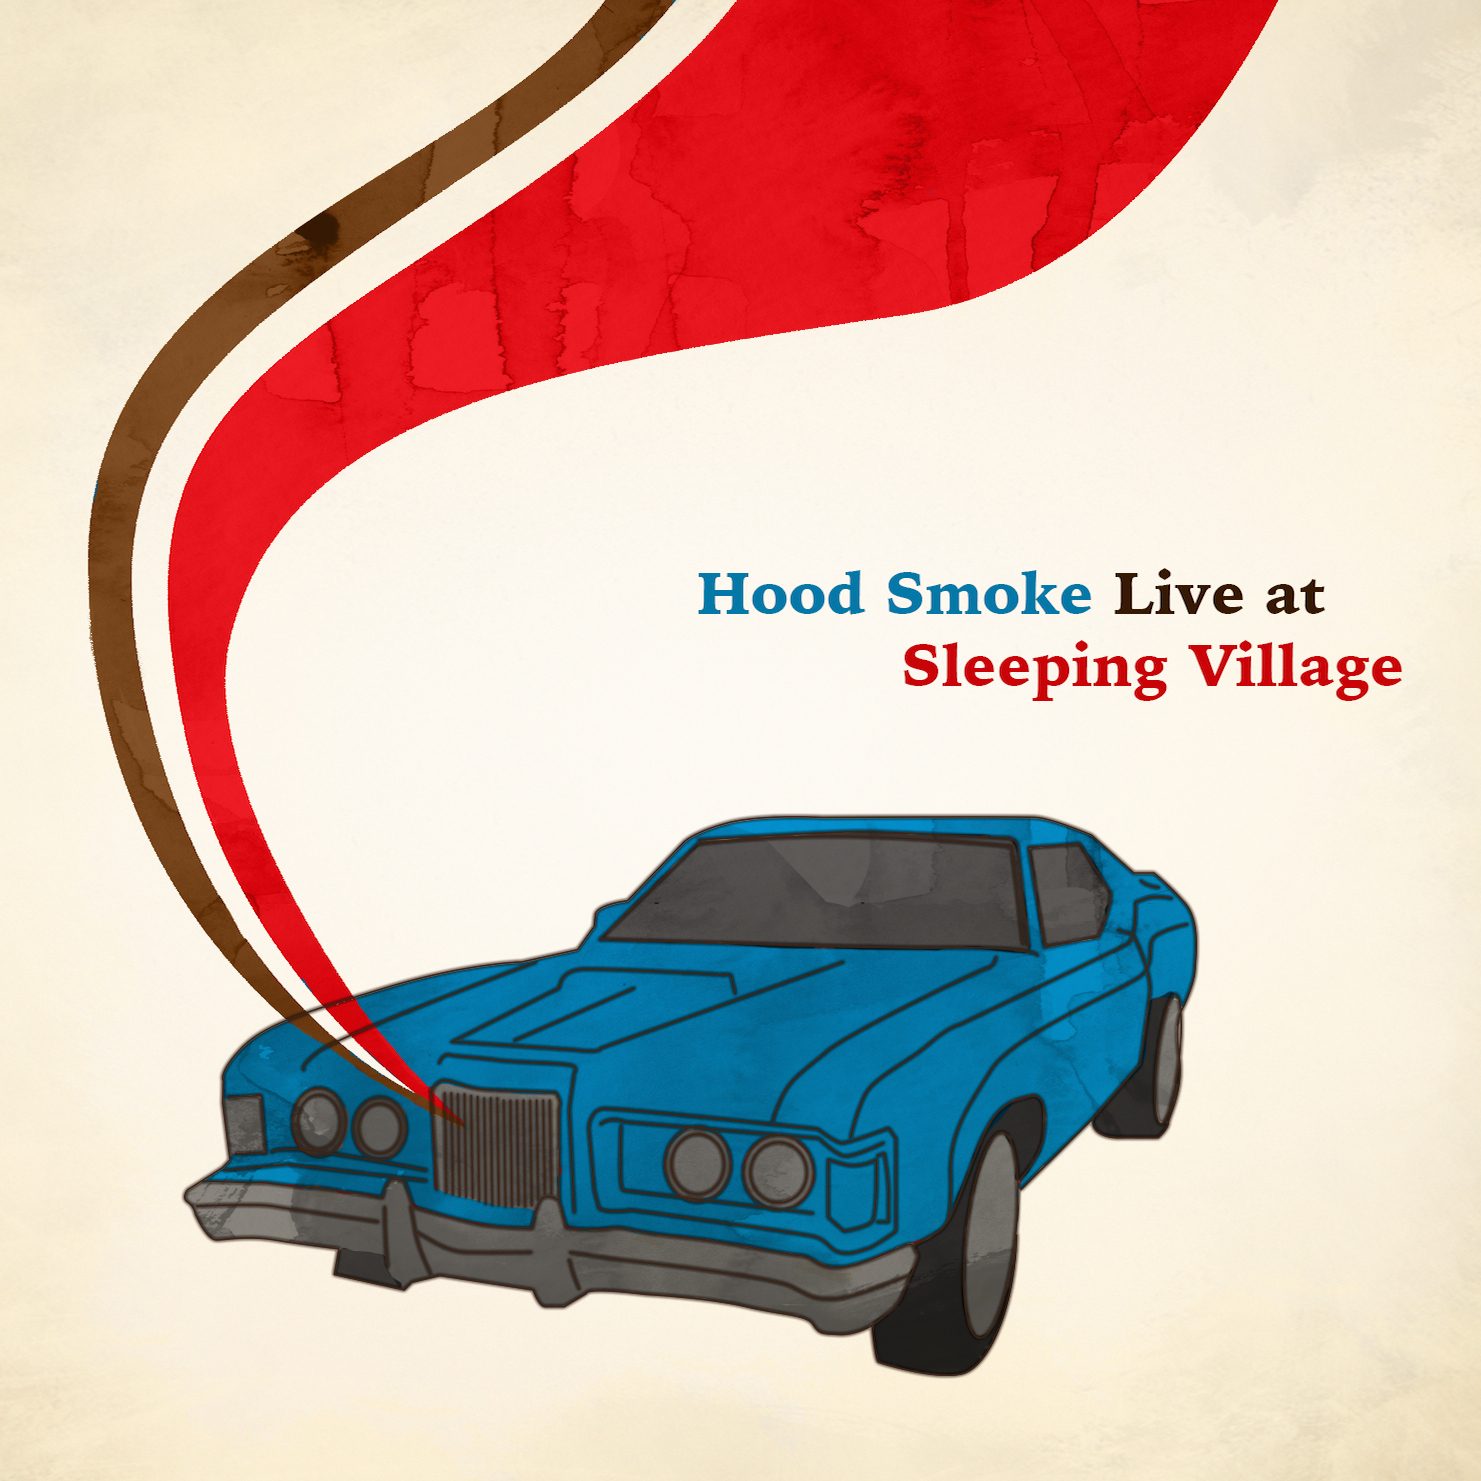 Hood Smoke | Live at Sleeping Village   Digital download  here